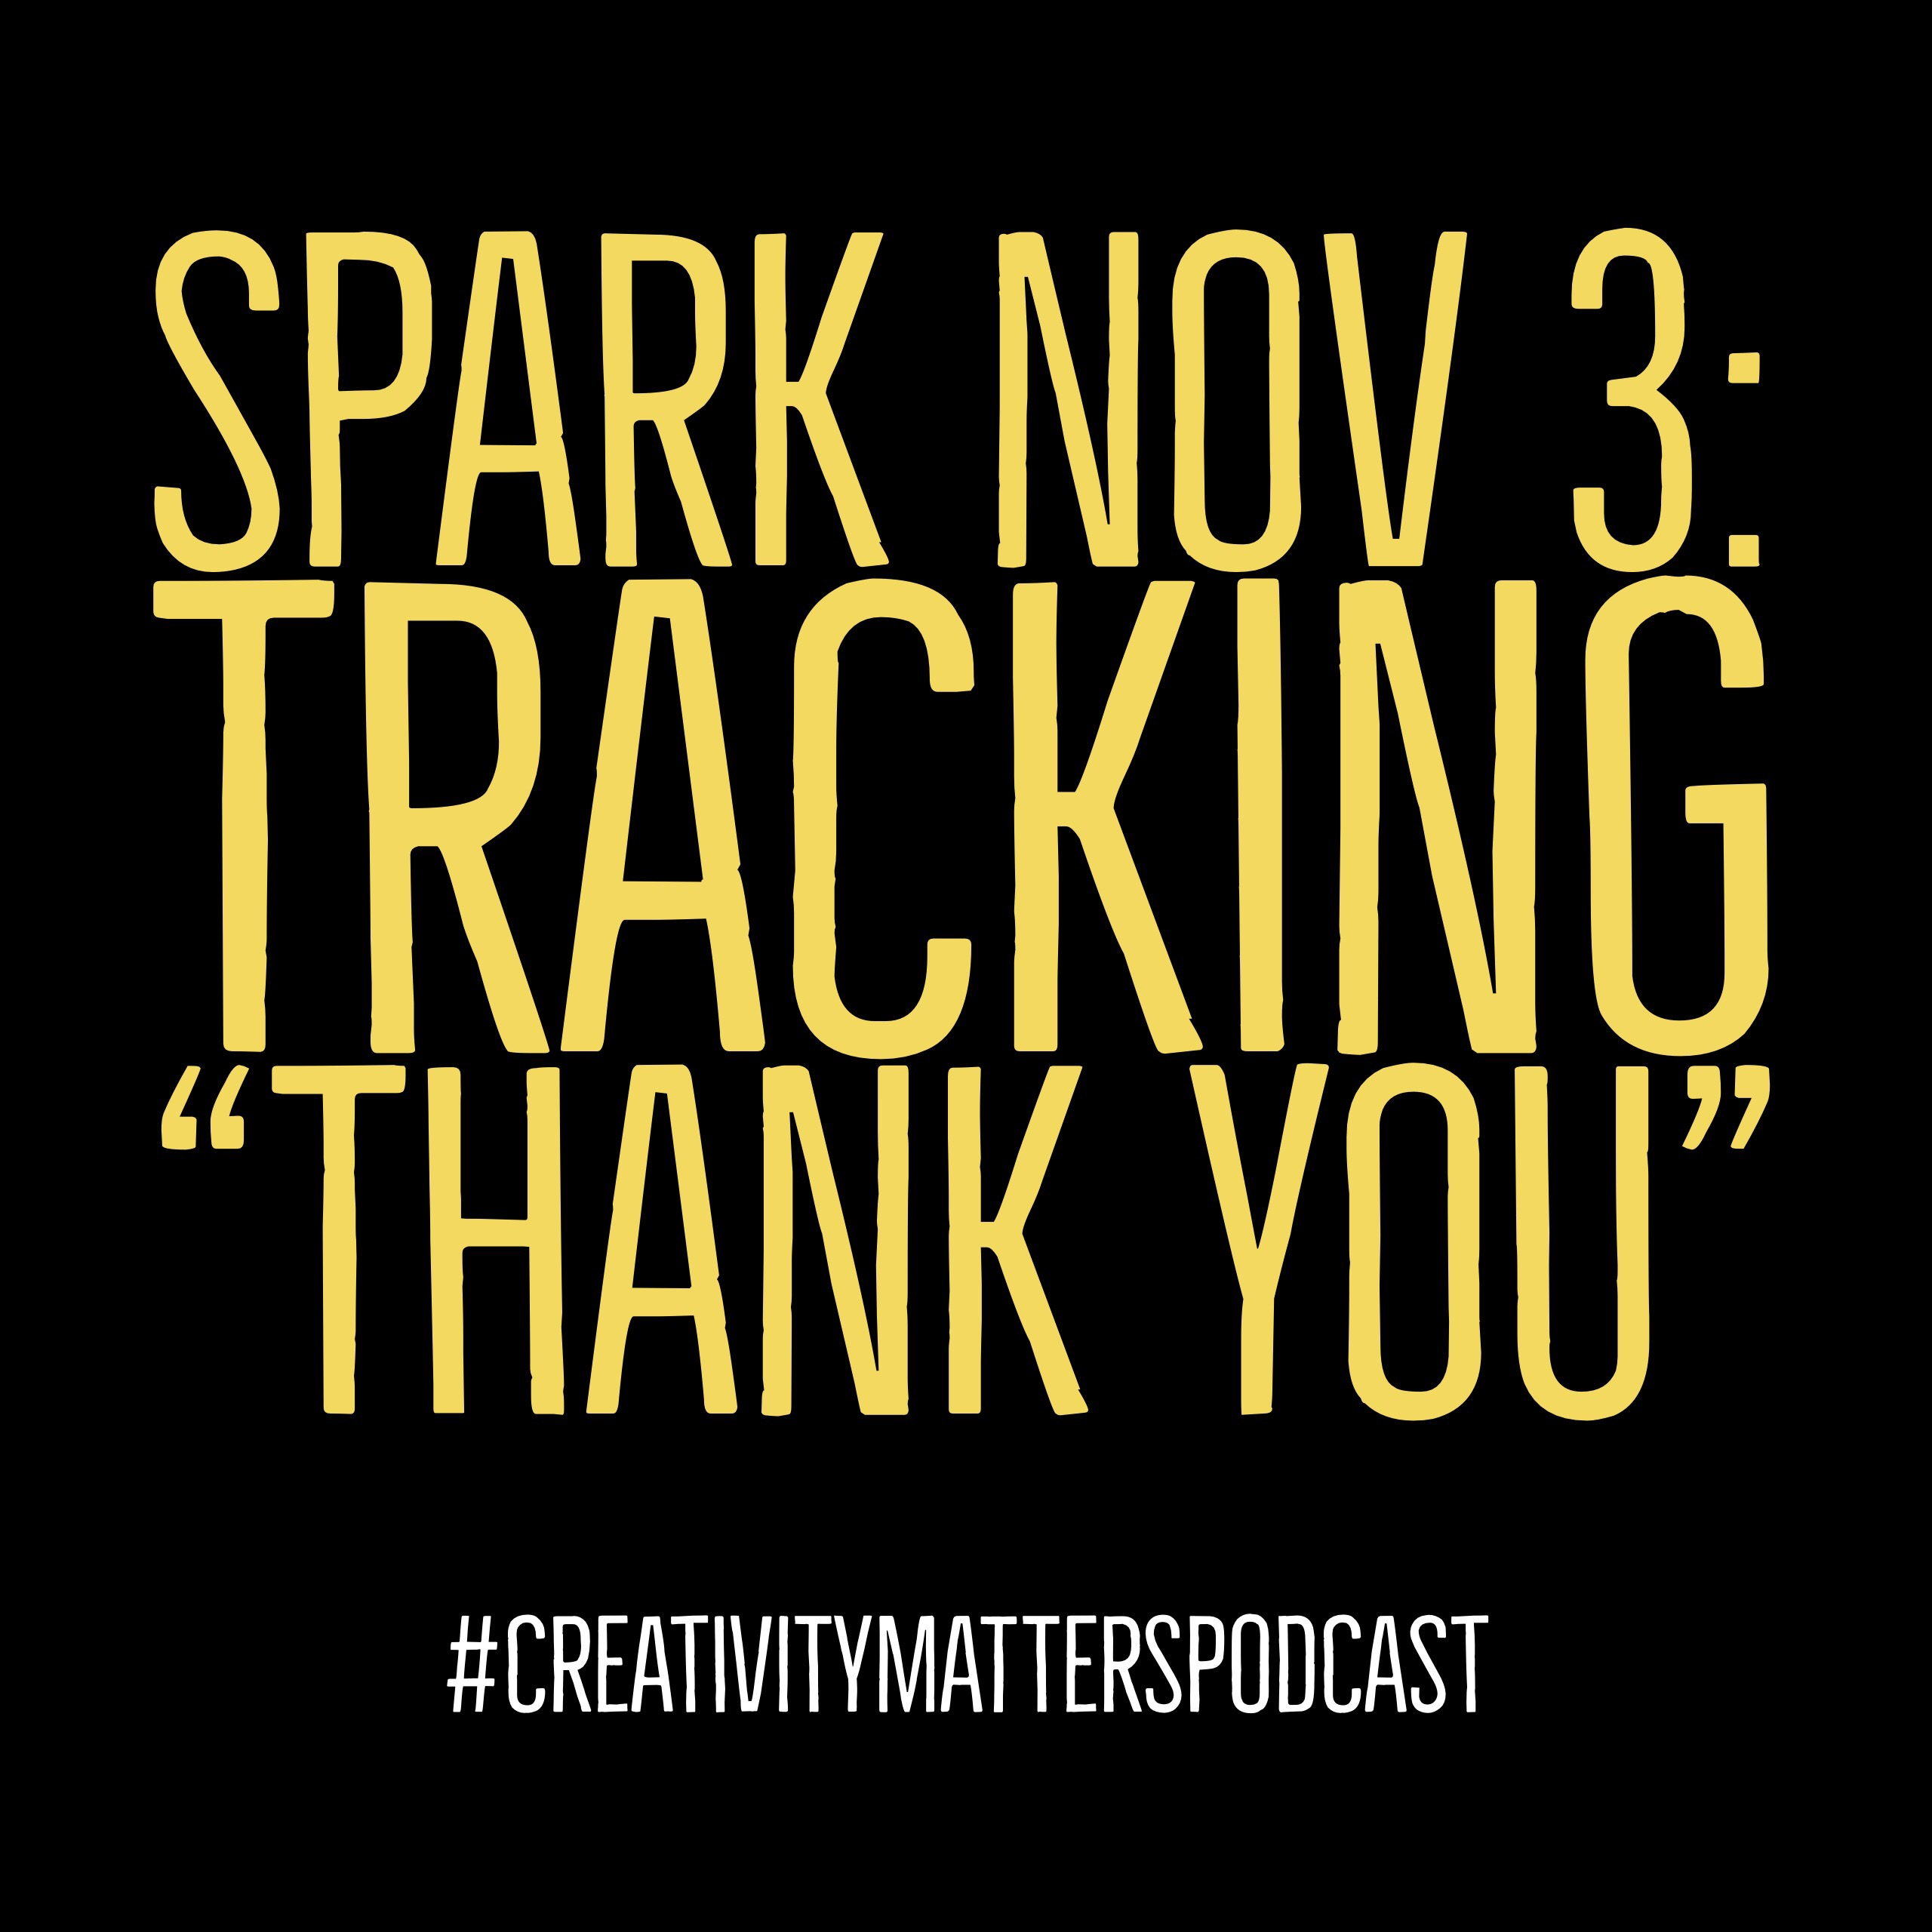 Spark 3: Tracking Thank You